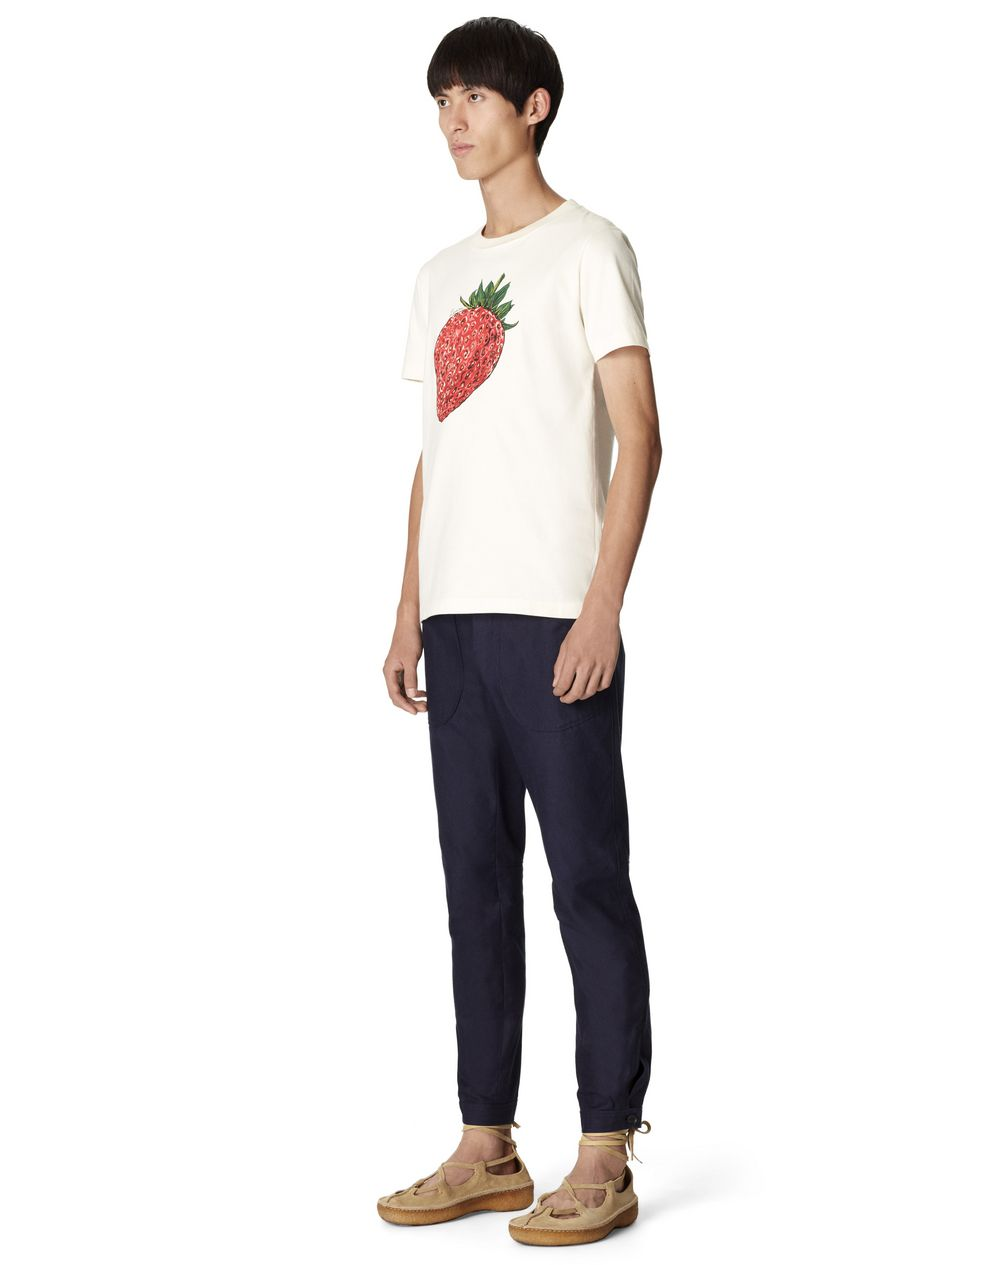 STRAWBERRY SCENTED T-SHIRT - Lanvin